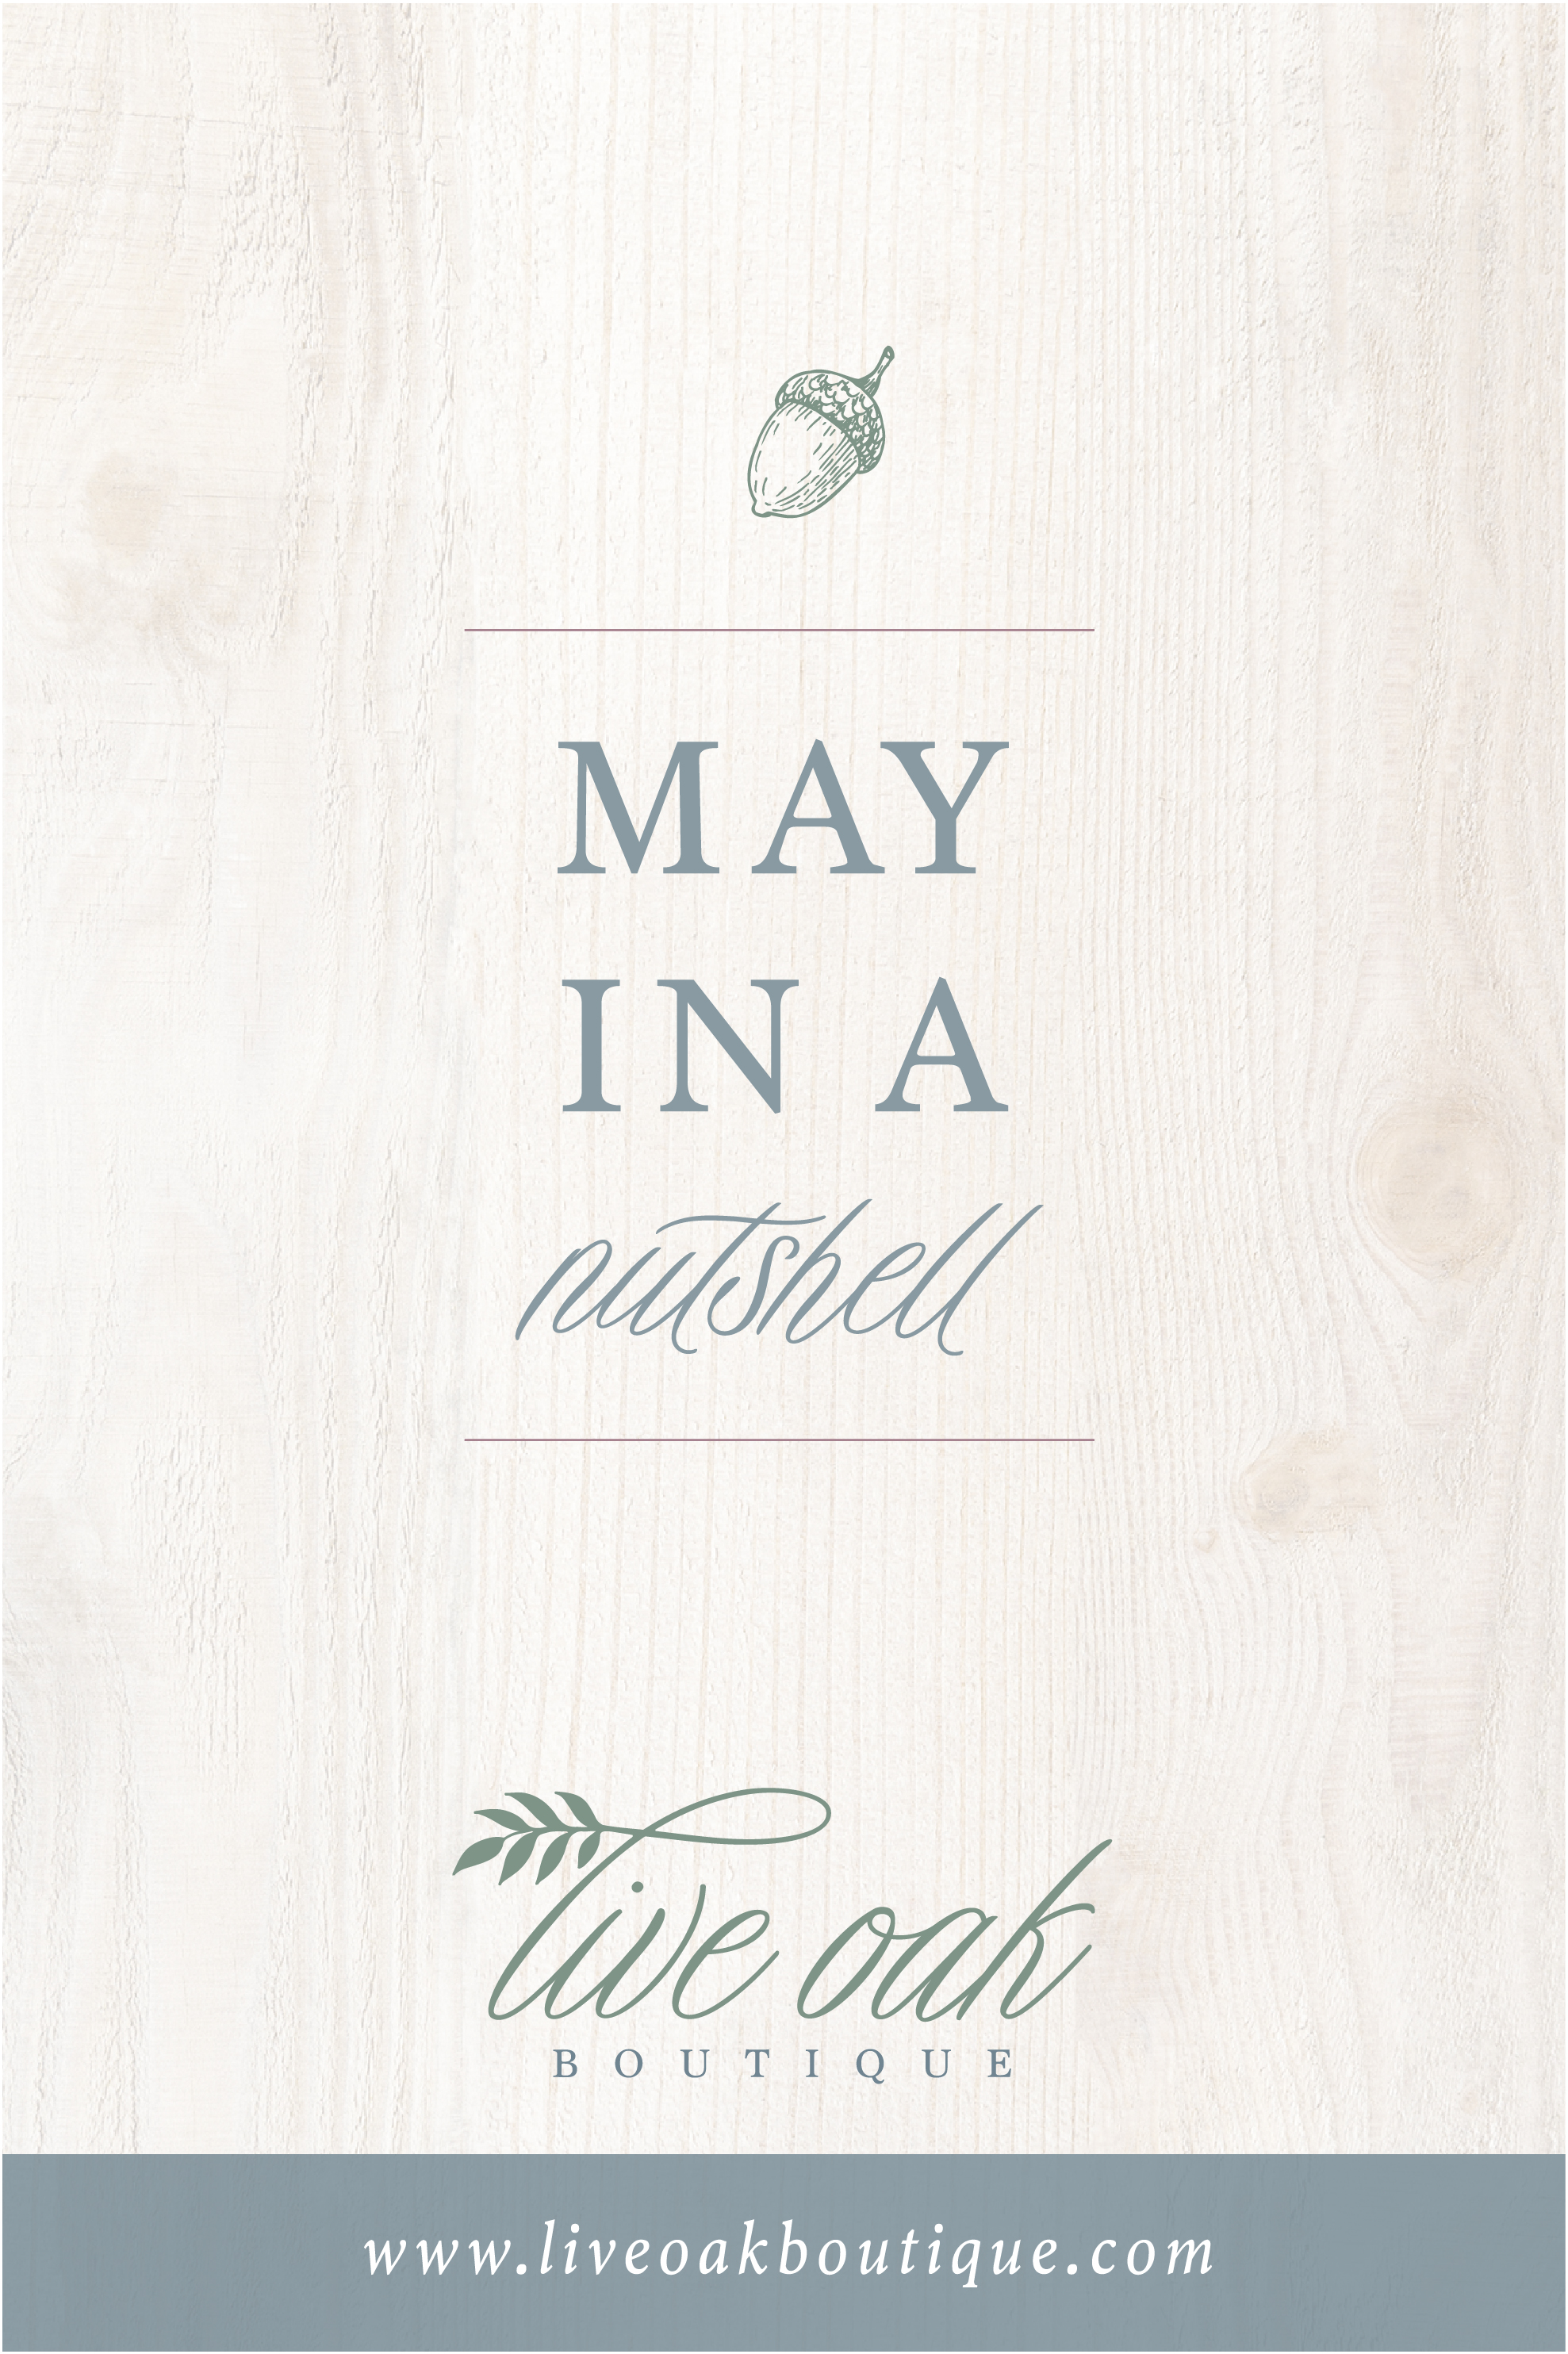 Live Oak Boutique Blog Post: May In A Nutshell